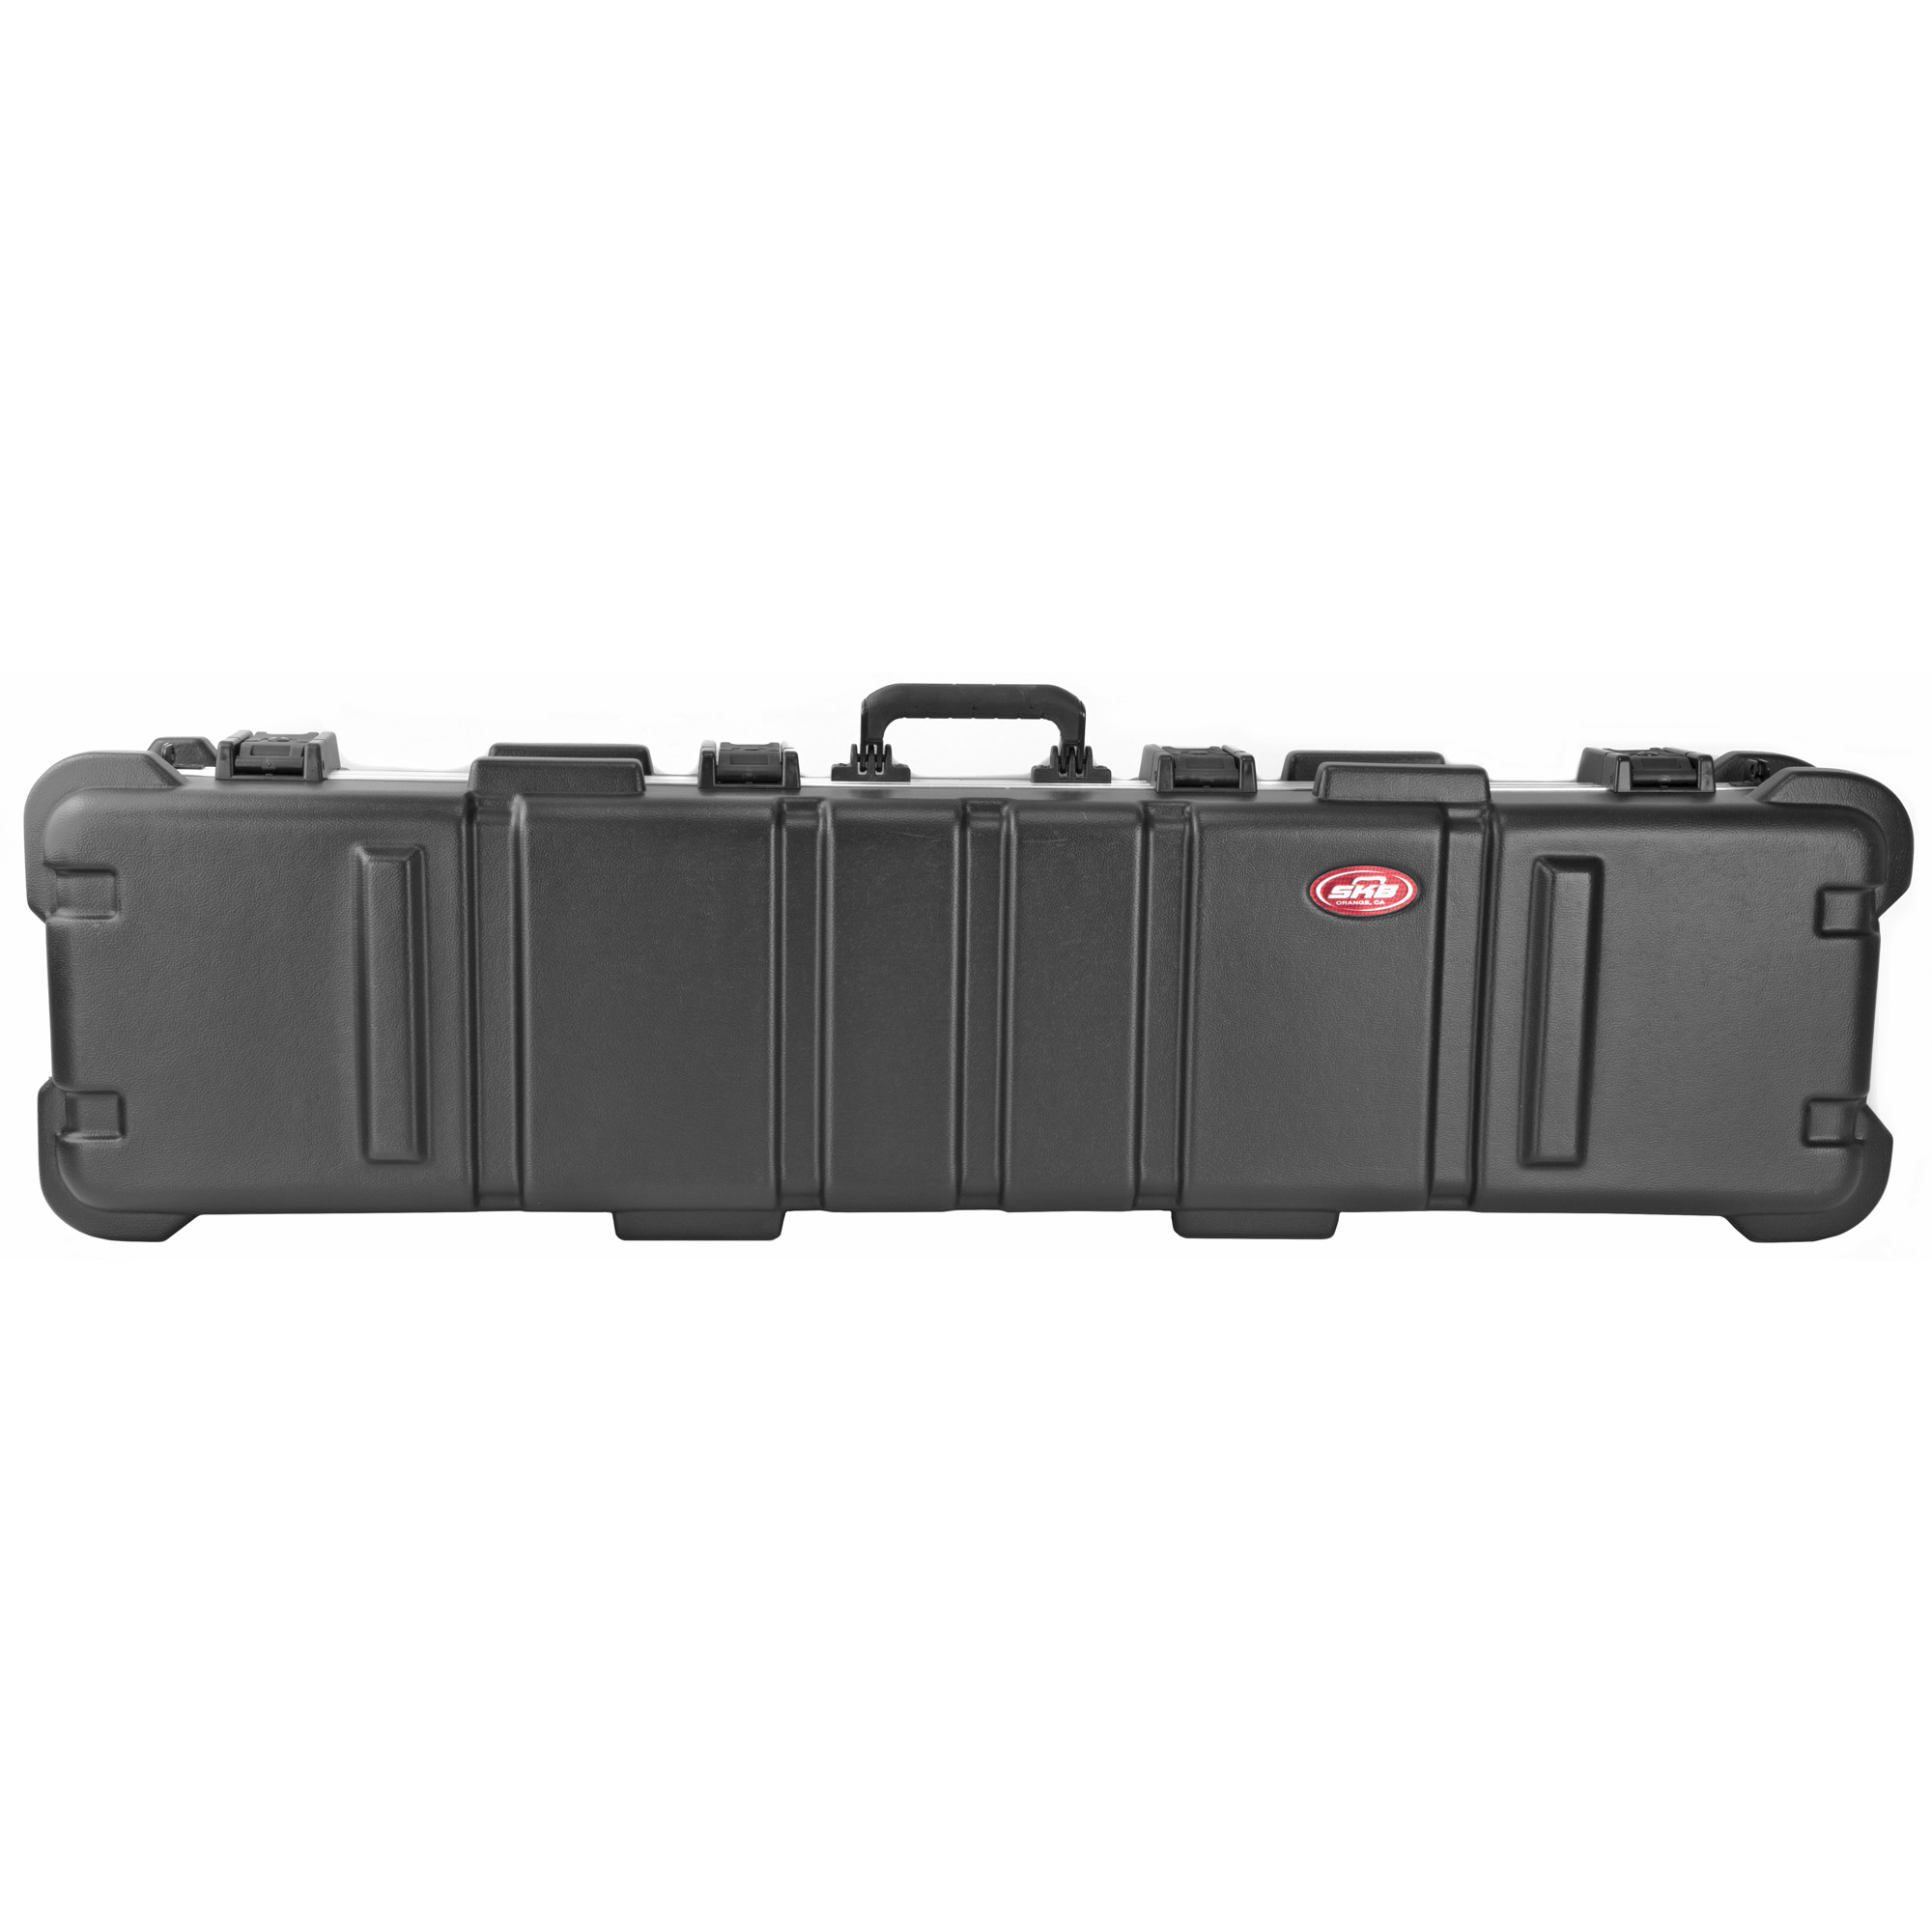 Skb Double Rifle Case W/whls 22lbs